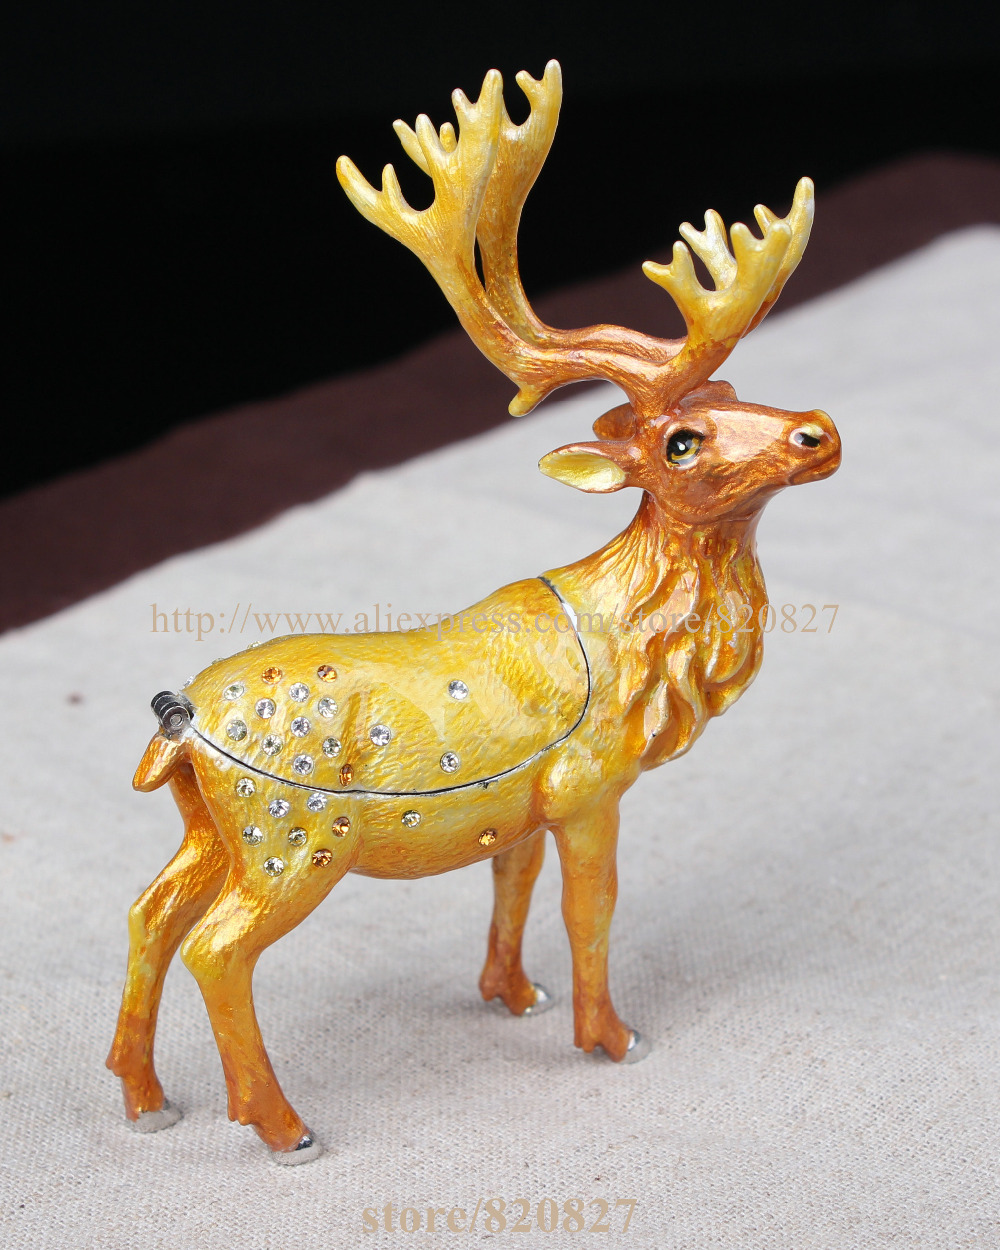 Collectible Deer Jewelry Box Reindeer-shaped Pill Box Deer Jeweled Trinket Box Enameled Pewter Bejeweled Musk Deer жирохов м приднестровье история конфликта